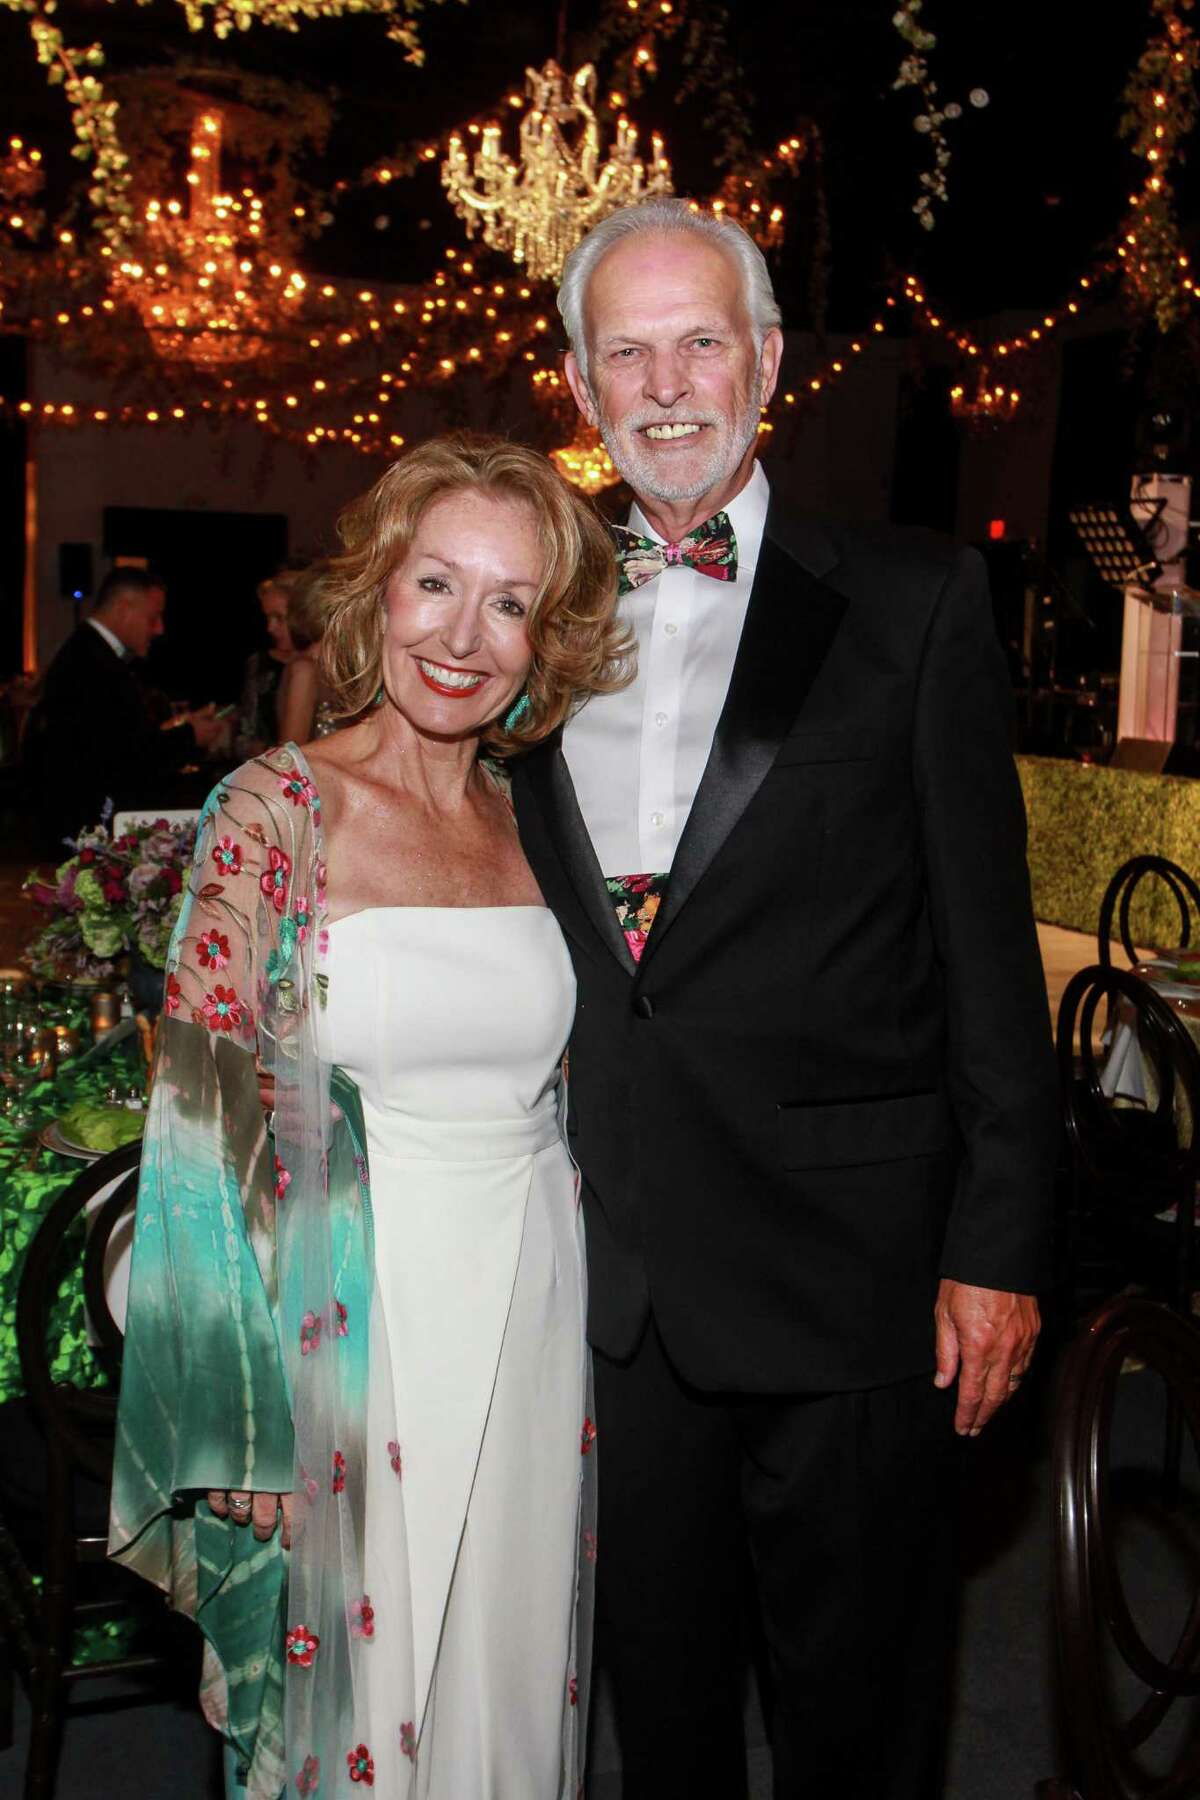 June and Steve Christensen at the Society for the Performing Arts Gala.